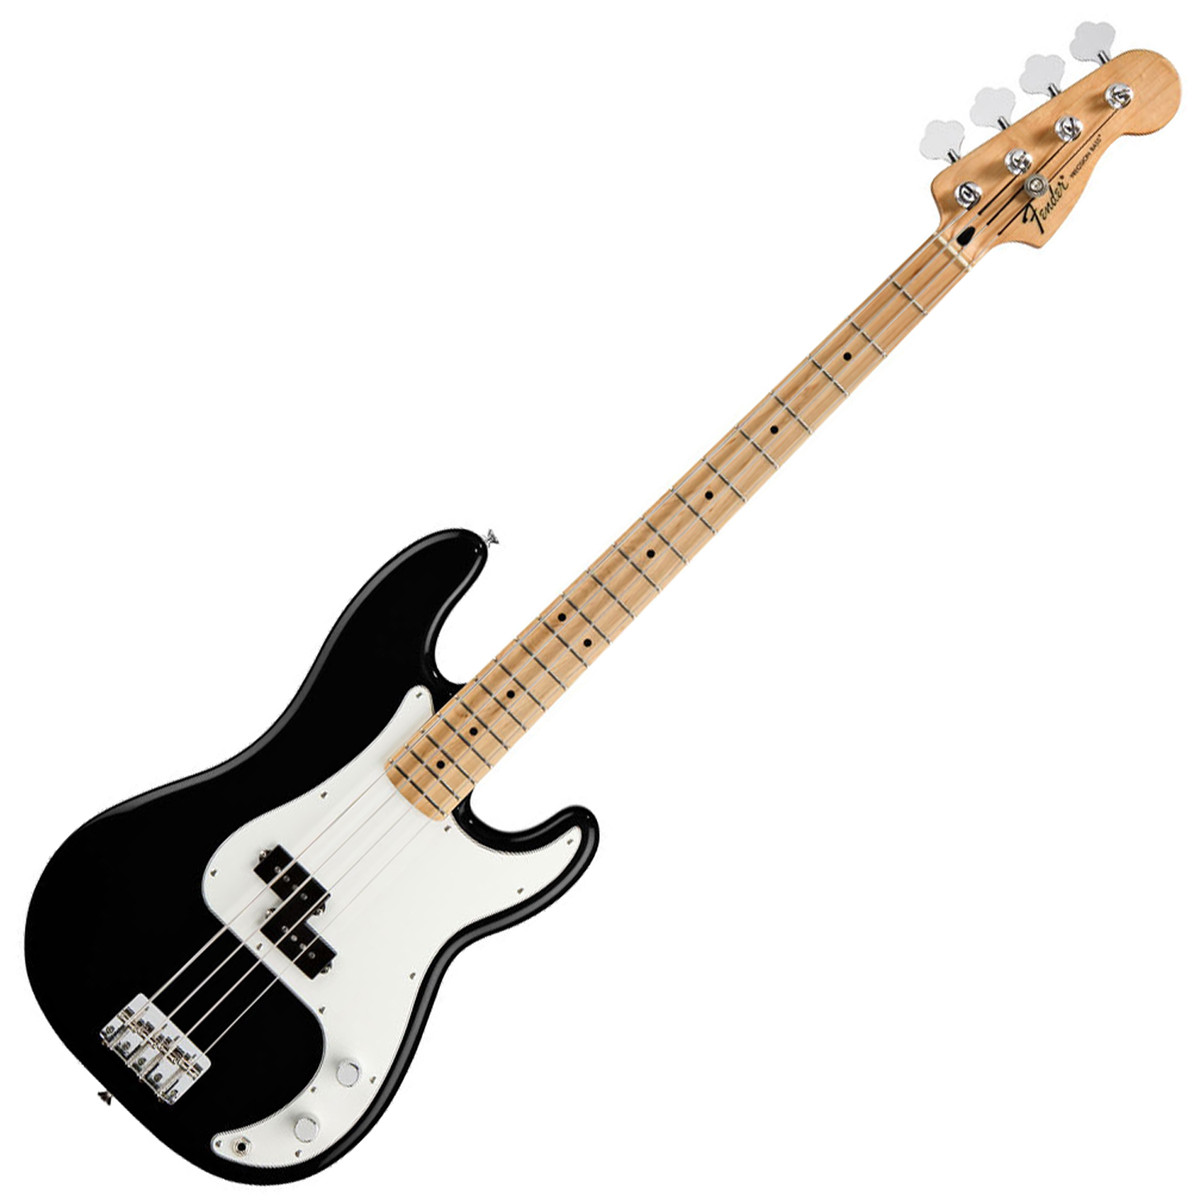 fender standard precision bass mn black at gear4music. Black Bedroom Furniture Sets. Home Design Ideas